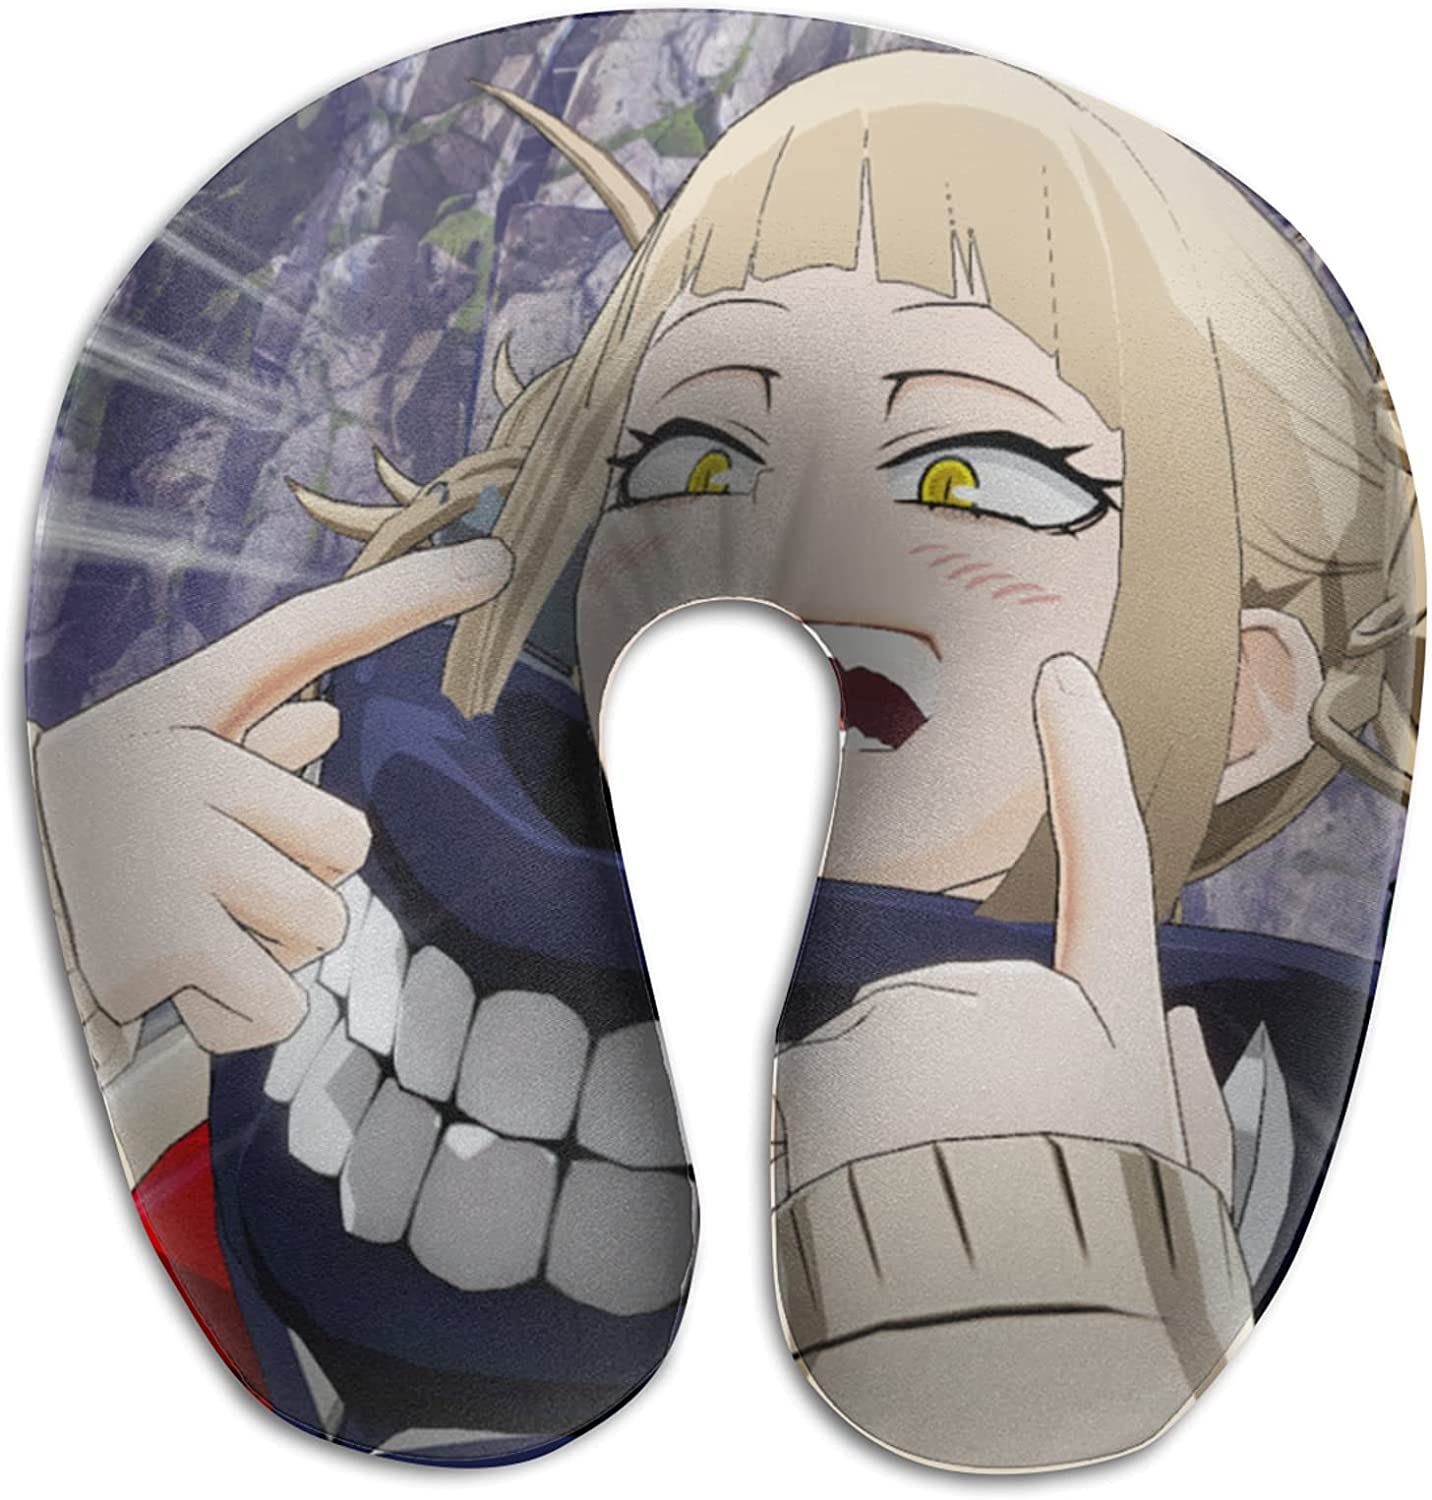 High quality new My Hero Academia Neck Cervical Soft Pillow for Memory 2021new shipping free Pain